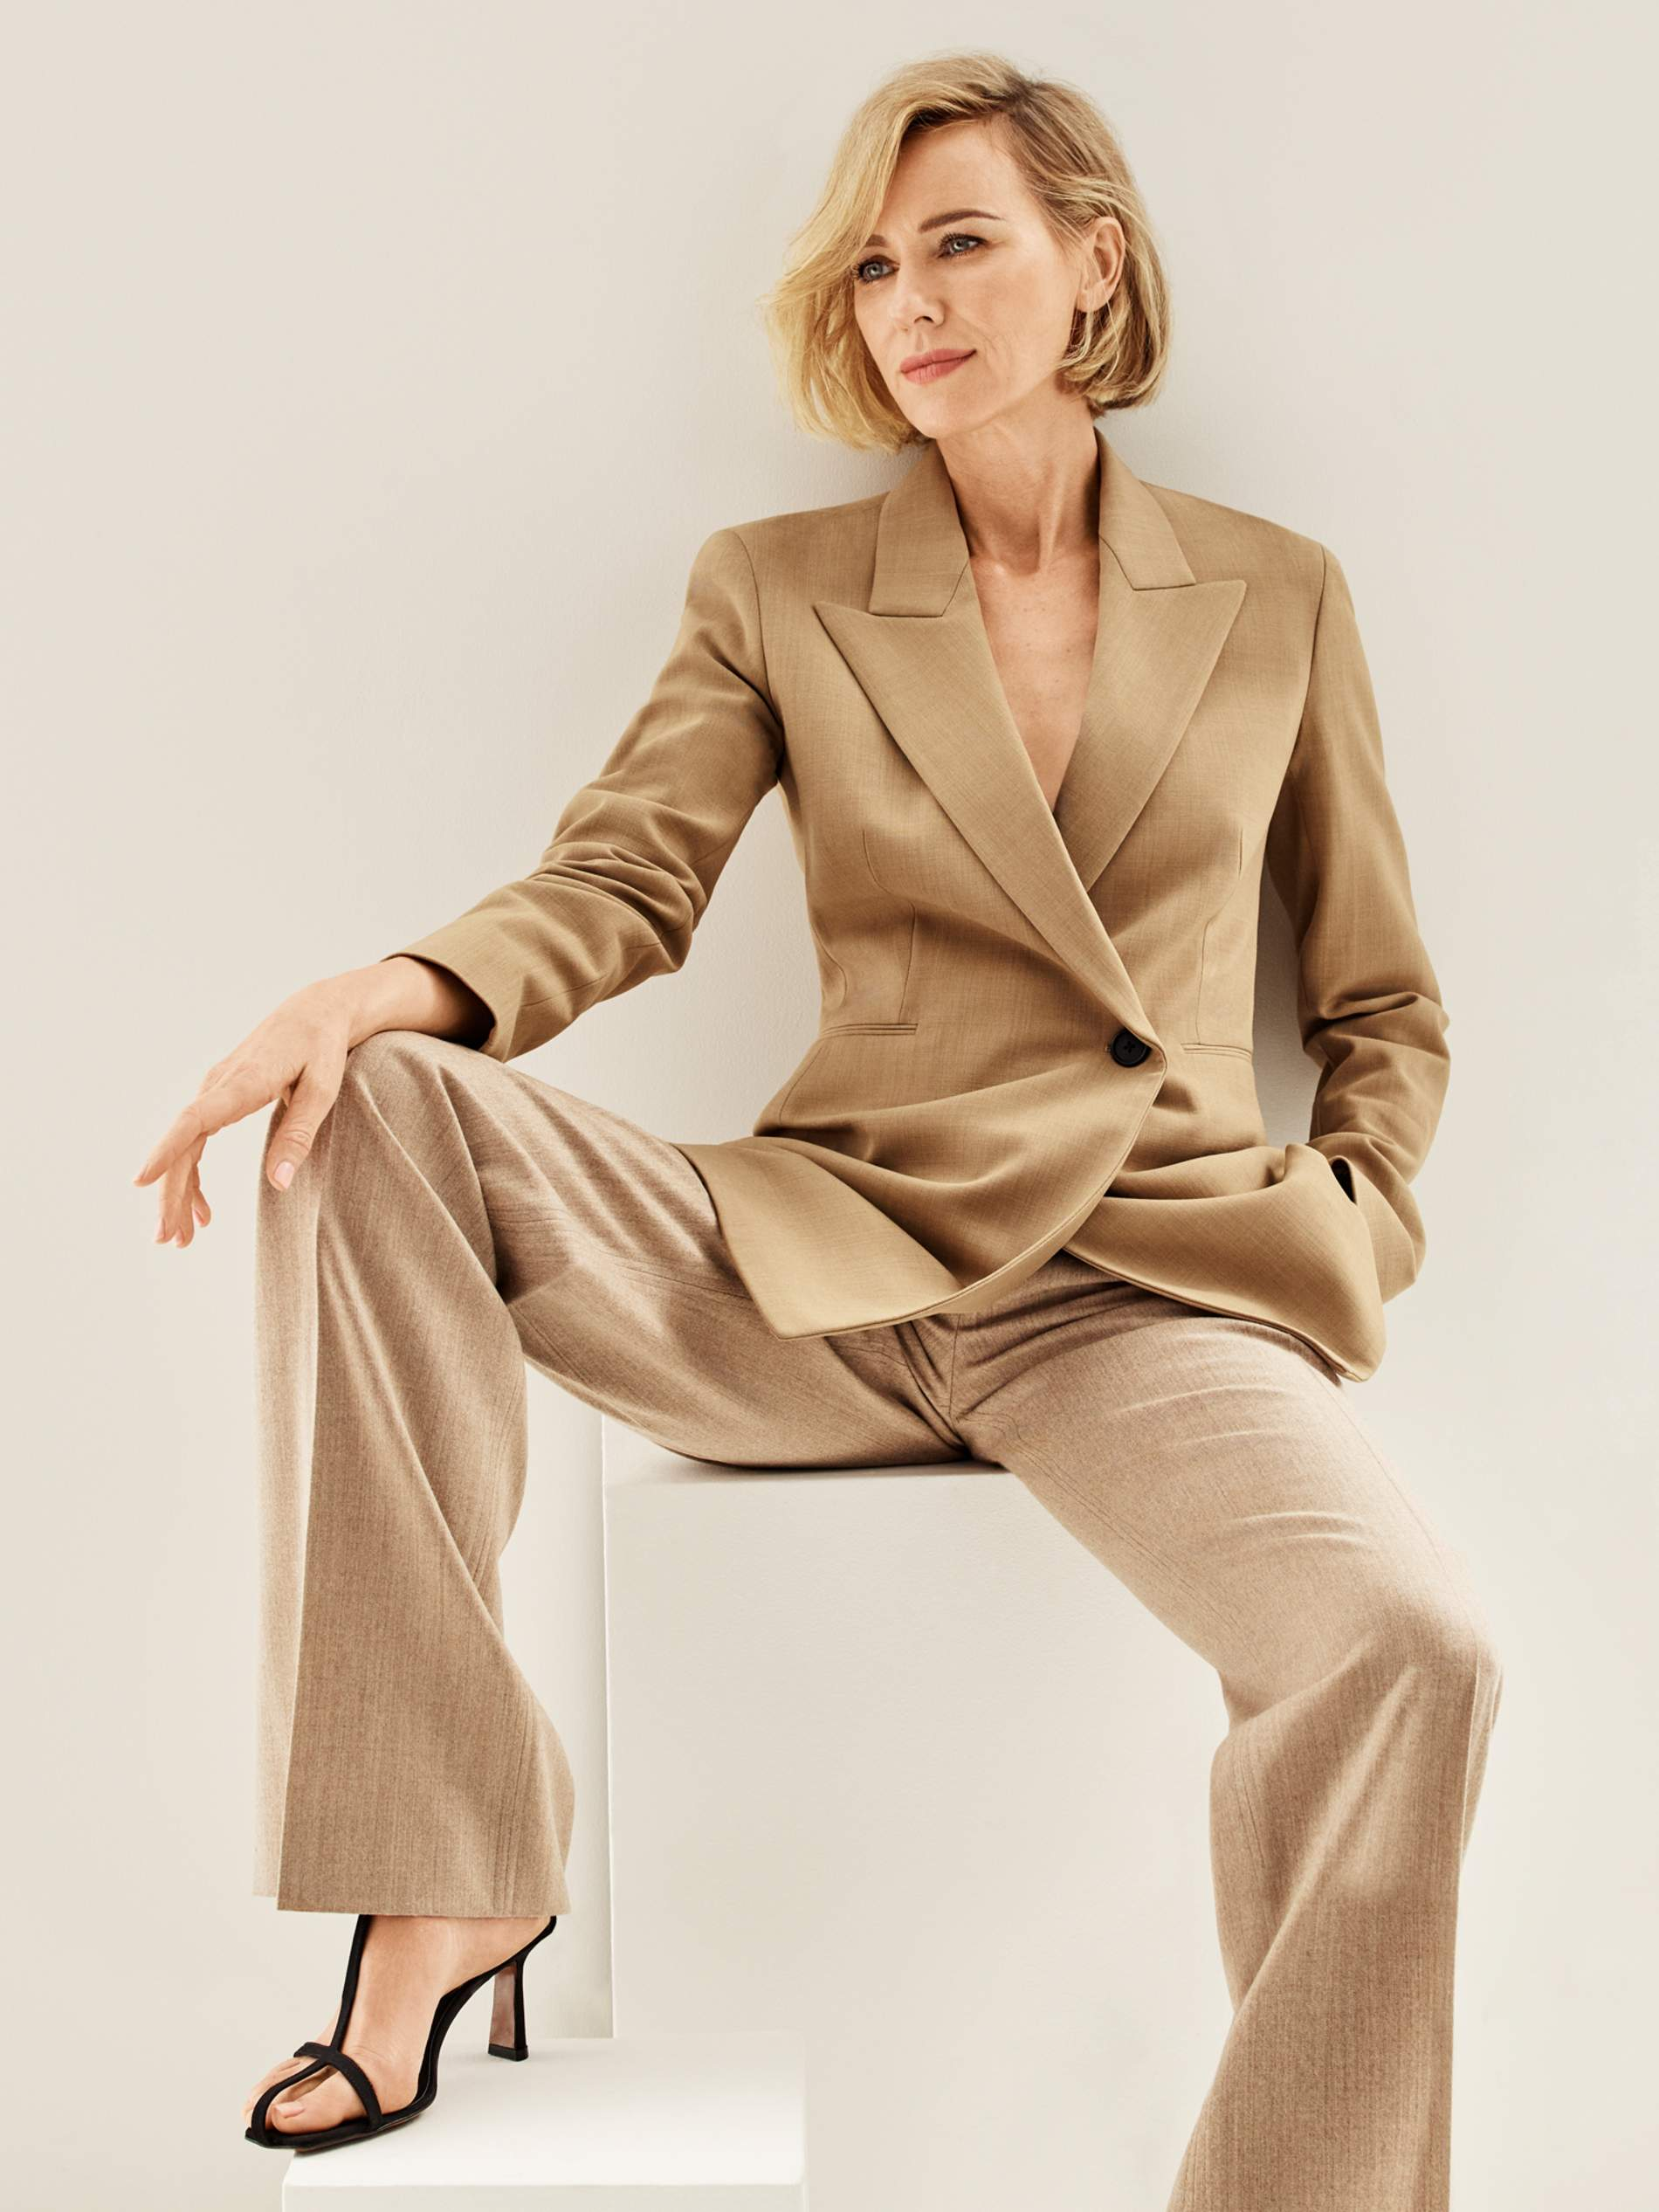 Blazer The Row; pants Chloé; sandals Neous. Naomi Watts by Jason Kibler for Porter Edit Aug. 2, 2019